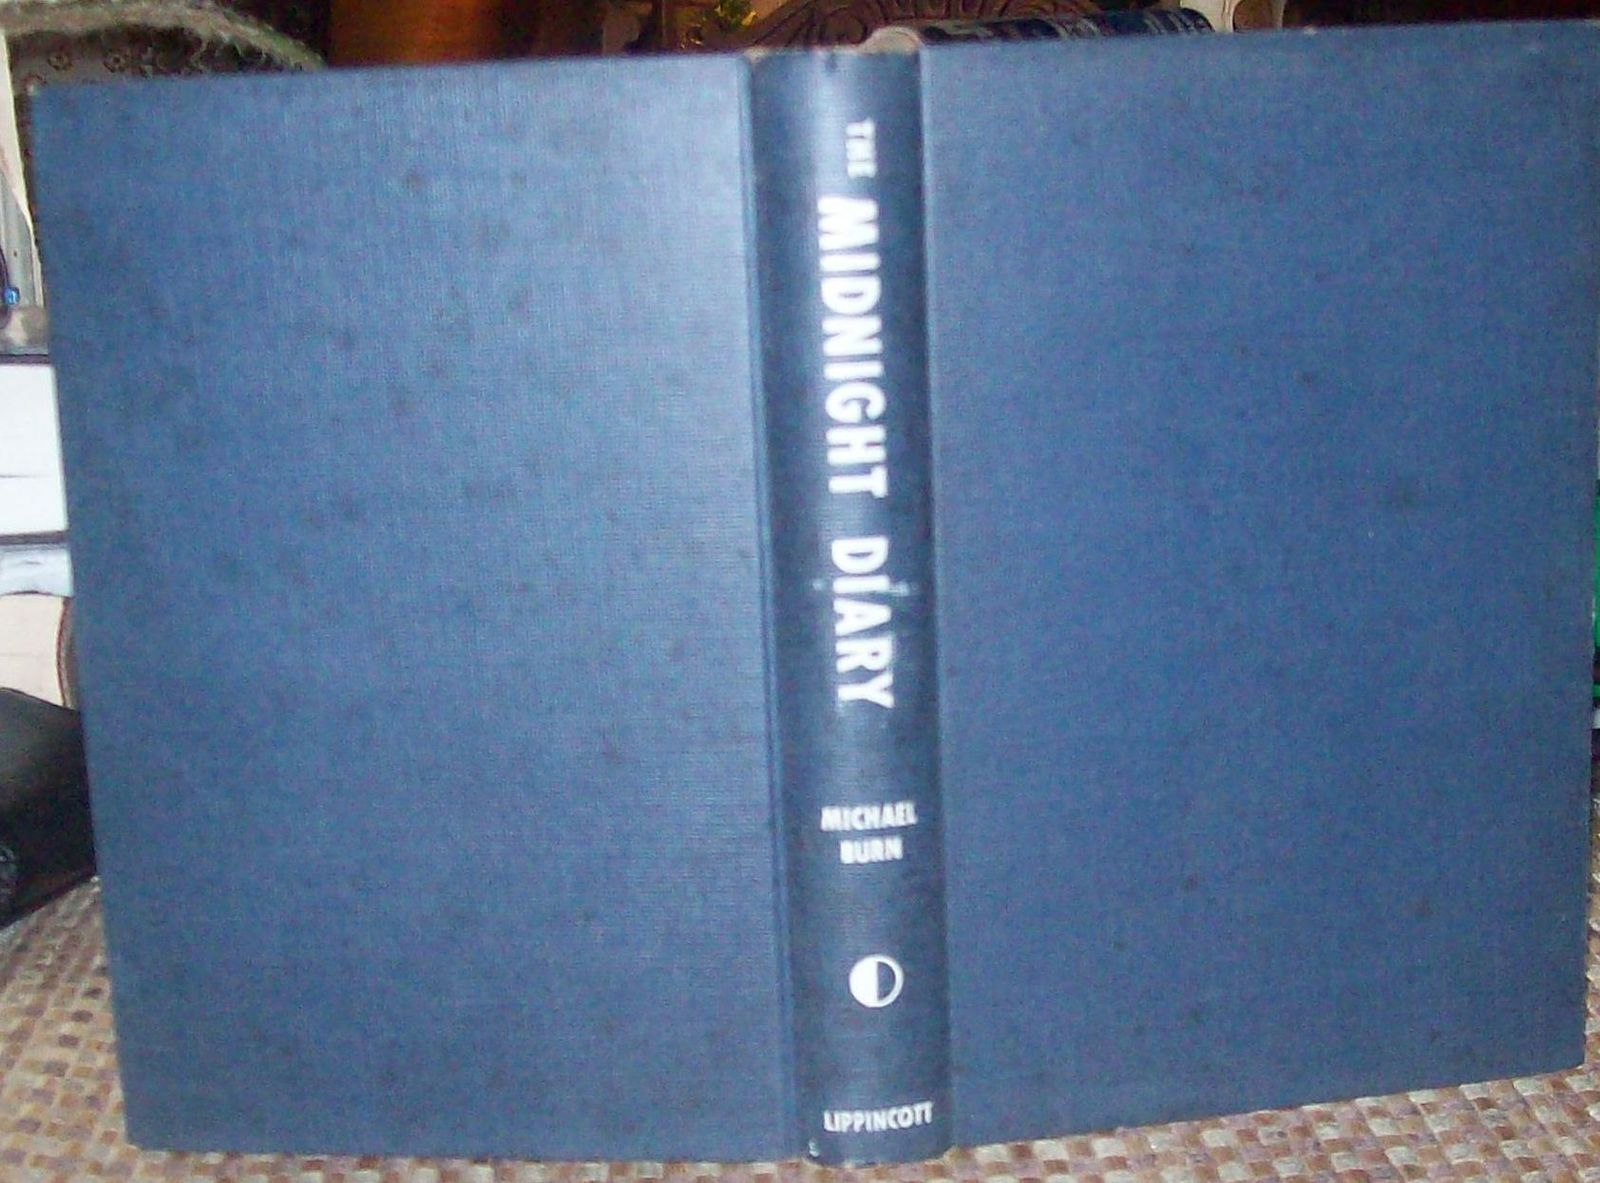 The Midnight Diary by Michael Burn 1953 HBDJ Life Behind the Iron Curtain